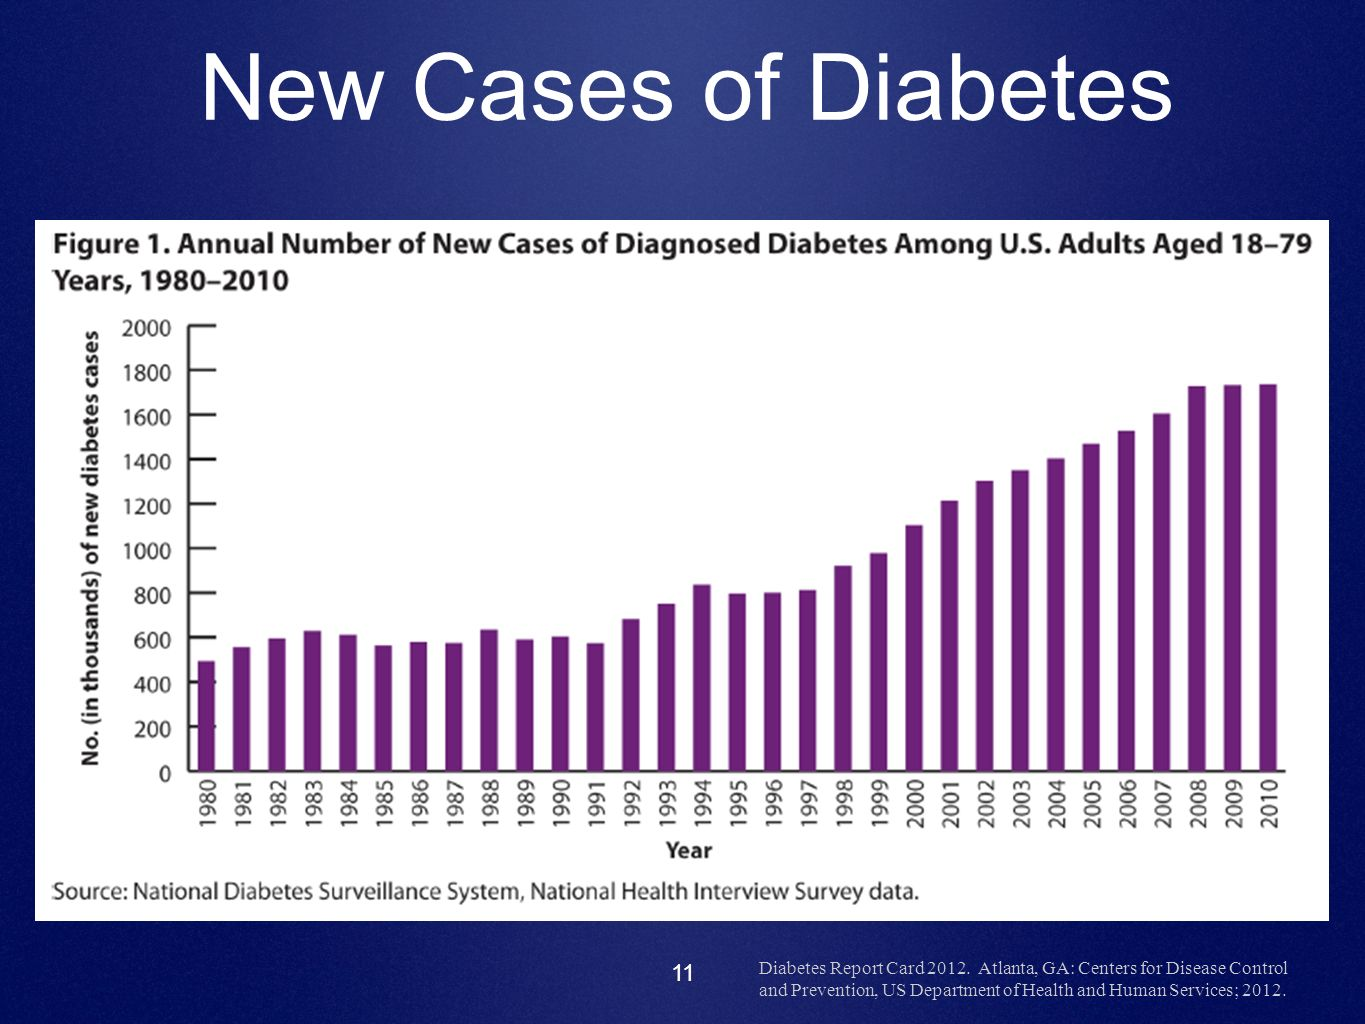 New Cases of Diabetes Note Y access in thousands of cases = 2,000,000